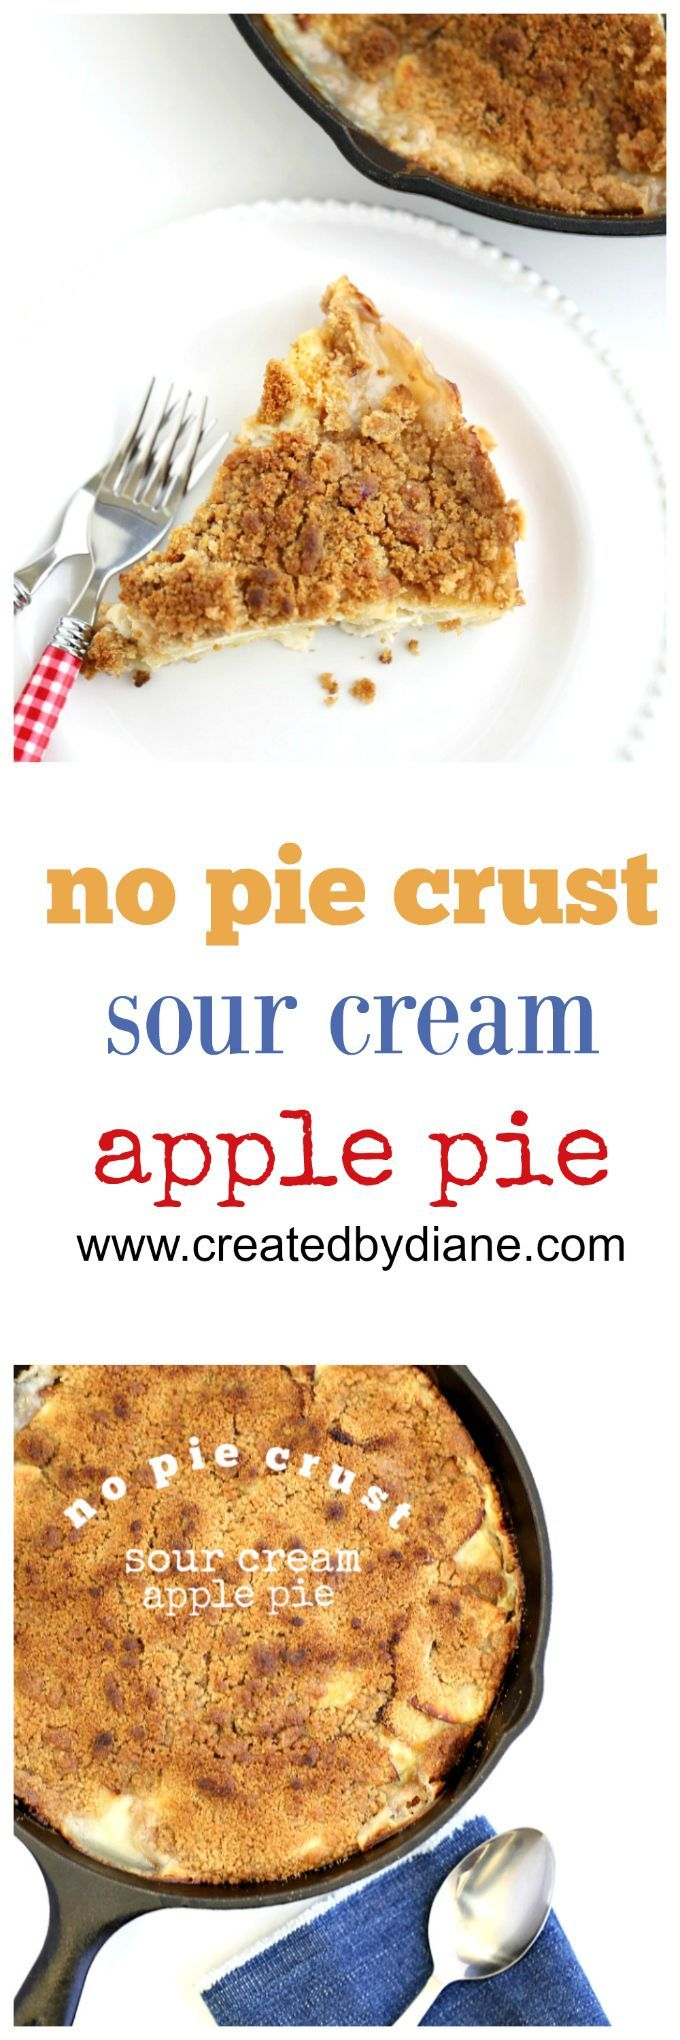 no need to fuss with pie crust the creamy filling creates a custard like crust on this easy pie, with a sweet creamy filling and tart apples